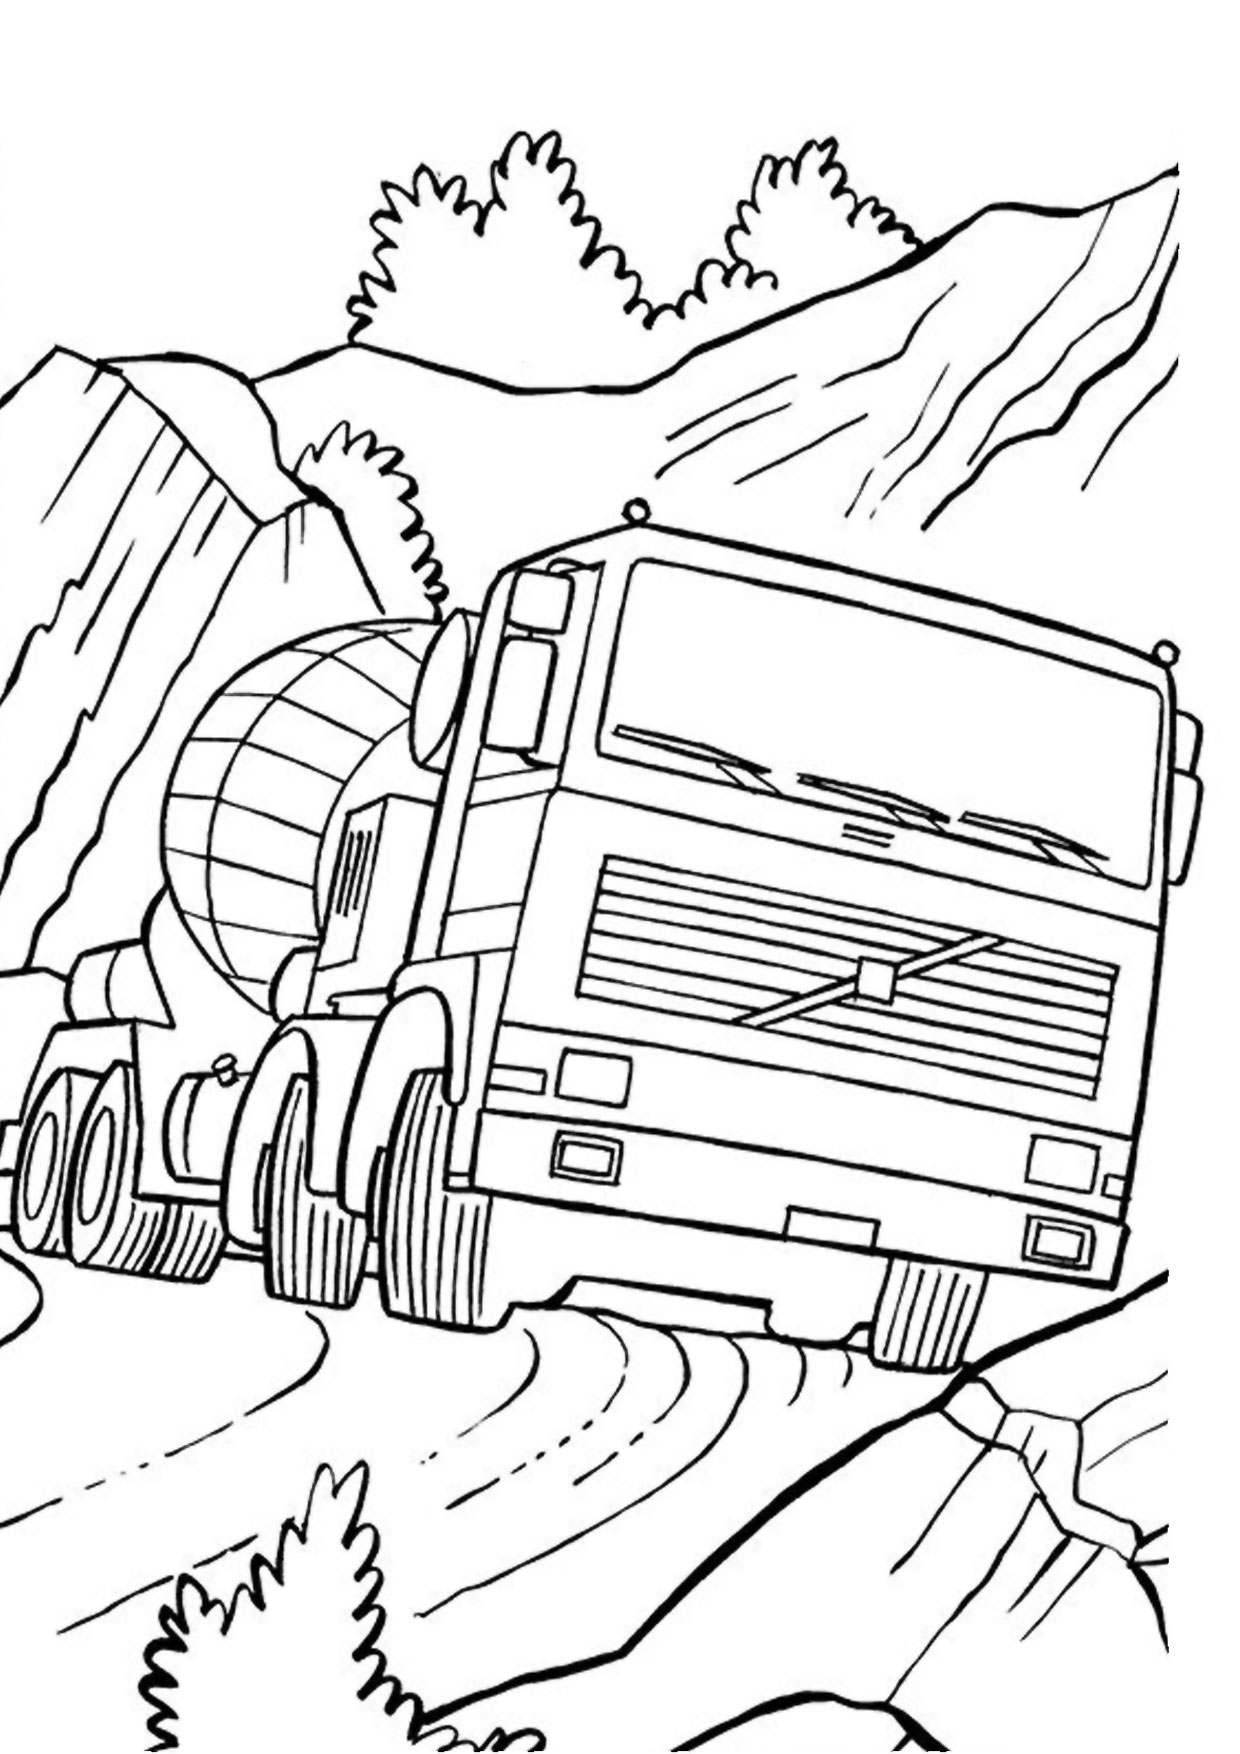 51 Disegni Di Camion Da Colorare Pianetabambini It